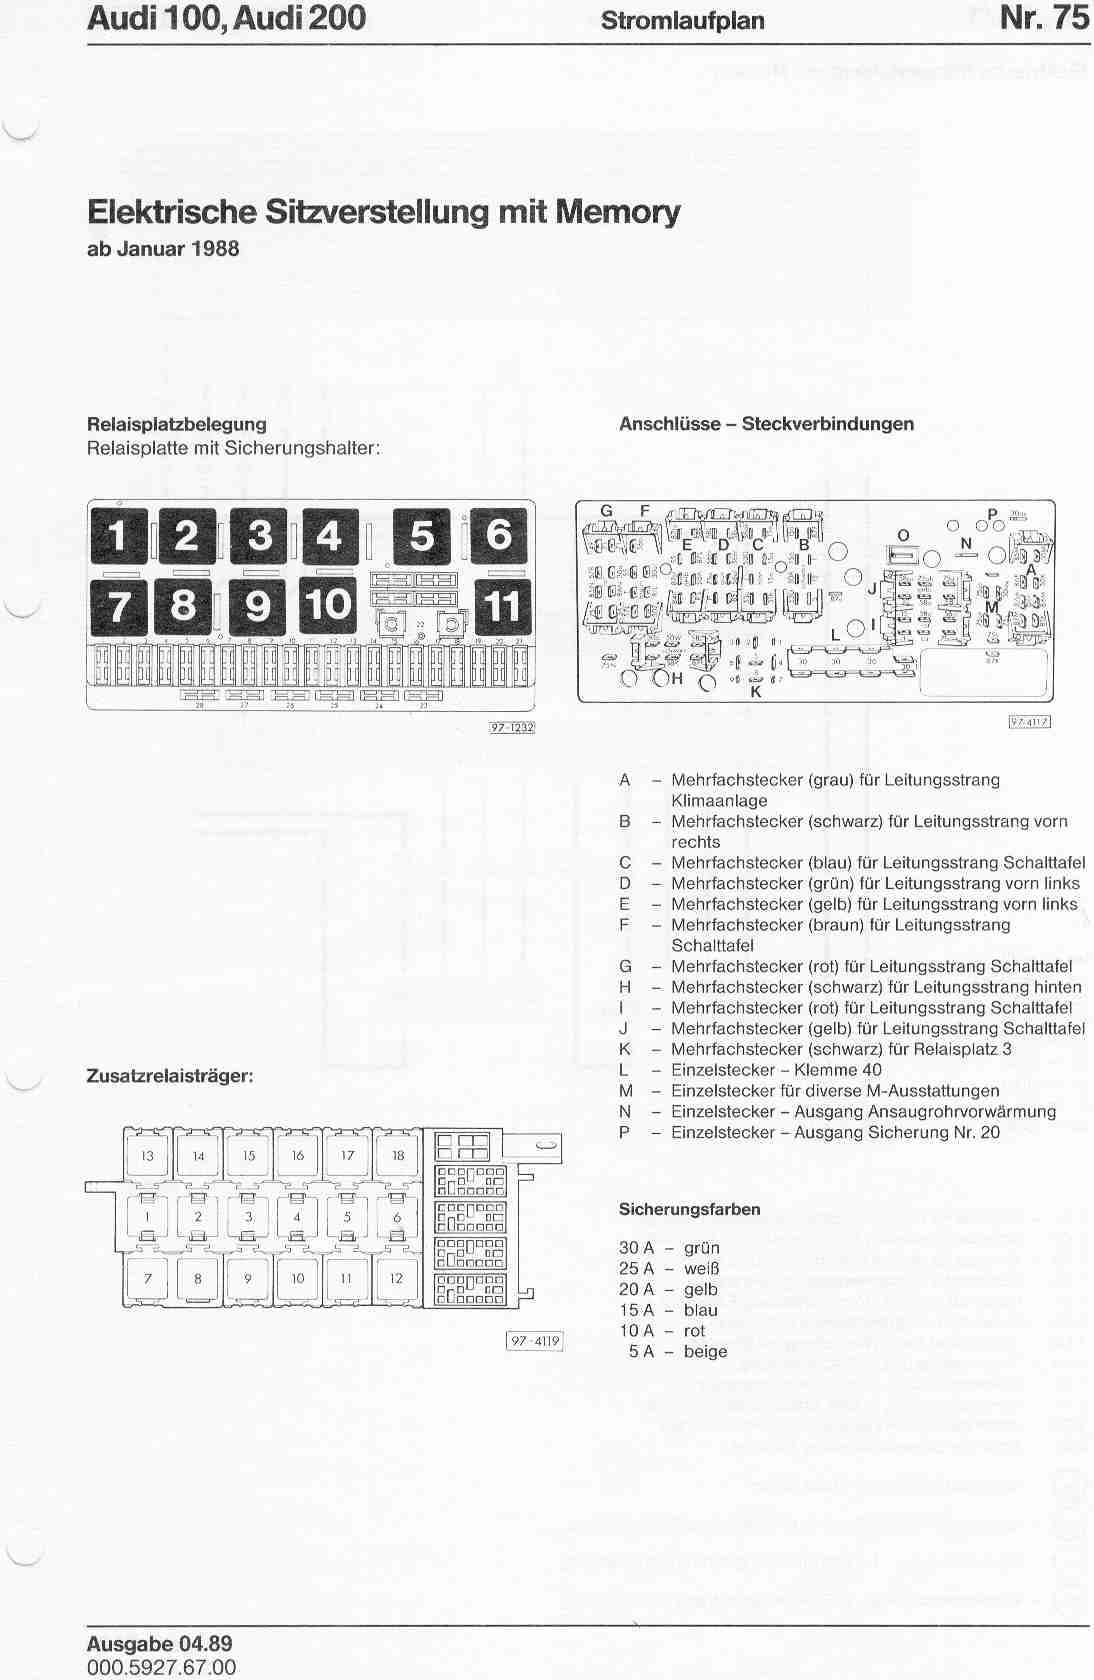 Audi 100 Fuse Box Location Wiring Diagrams Club Car Panel Diagram Library Rh 12 Bloxhuette De 2001 A4